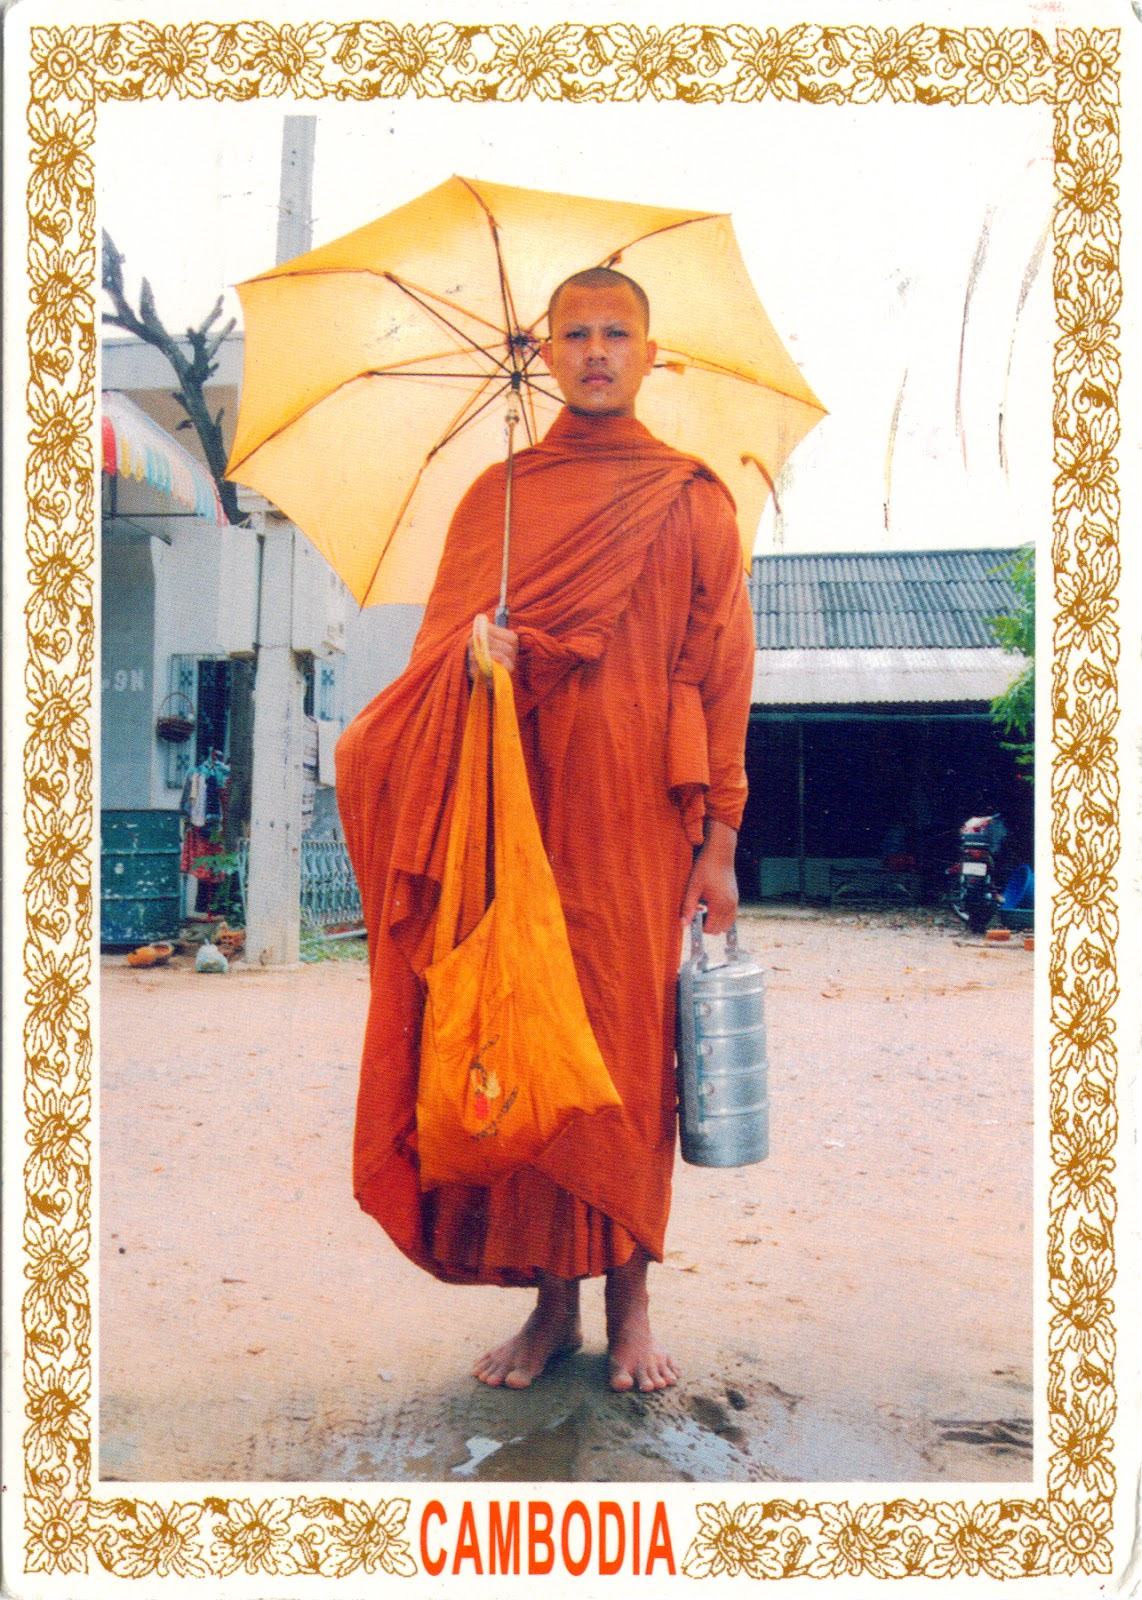 buddhist single men in rayle Buddhism (/ ˈ b ʊ d ɪ z əm /, us also / ˈ b uː-/) is the world's fourth-largest religion with over 520 million followers, or over 7% of the global population, known as buddhists an indian religion, buddhism encompasses a variety of traditions, beliefs and spiritual practices largely based on original teachings attributed to the buddha and resulting interpreted philosophies.